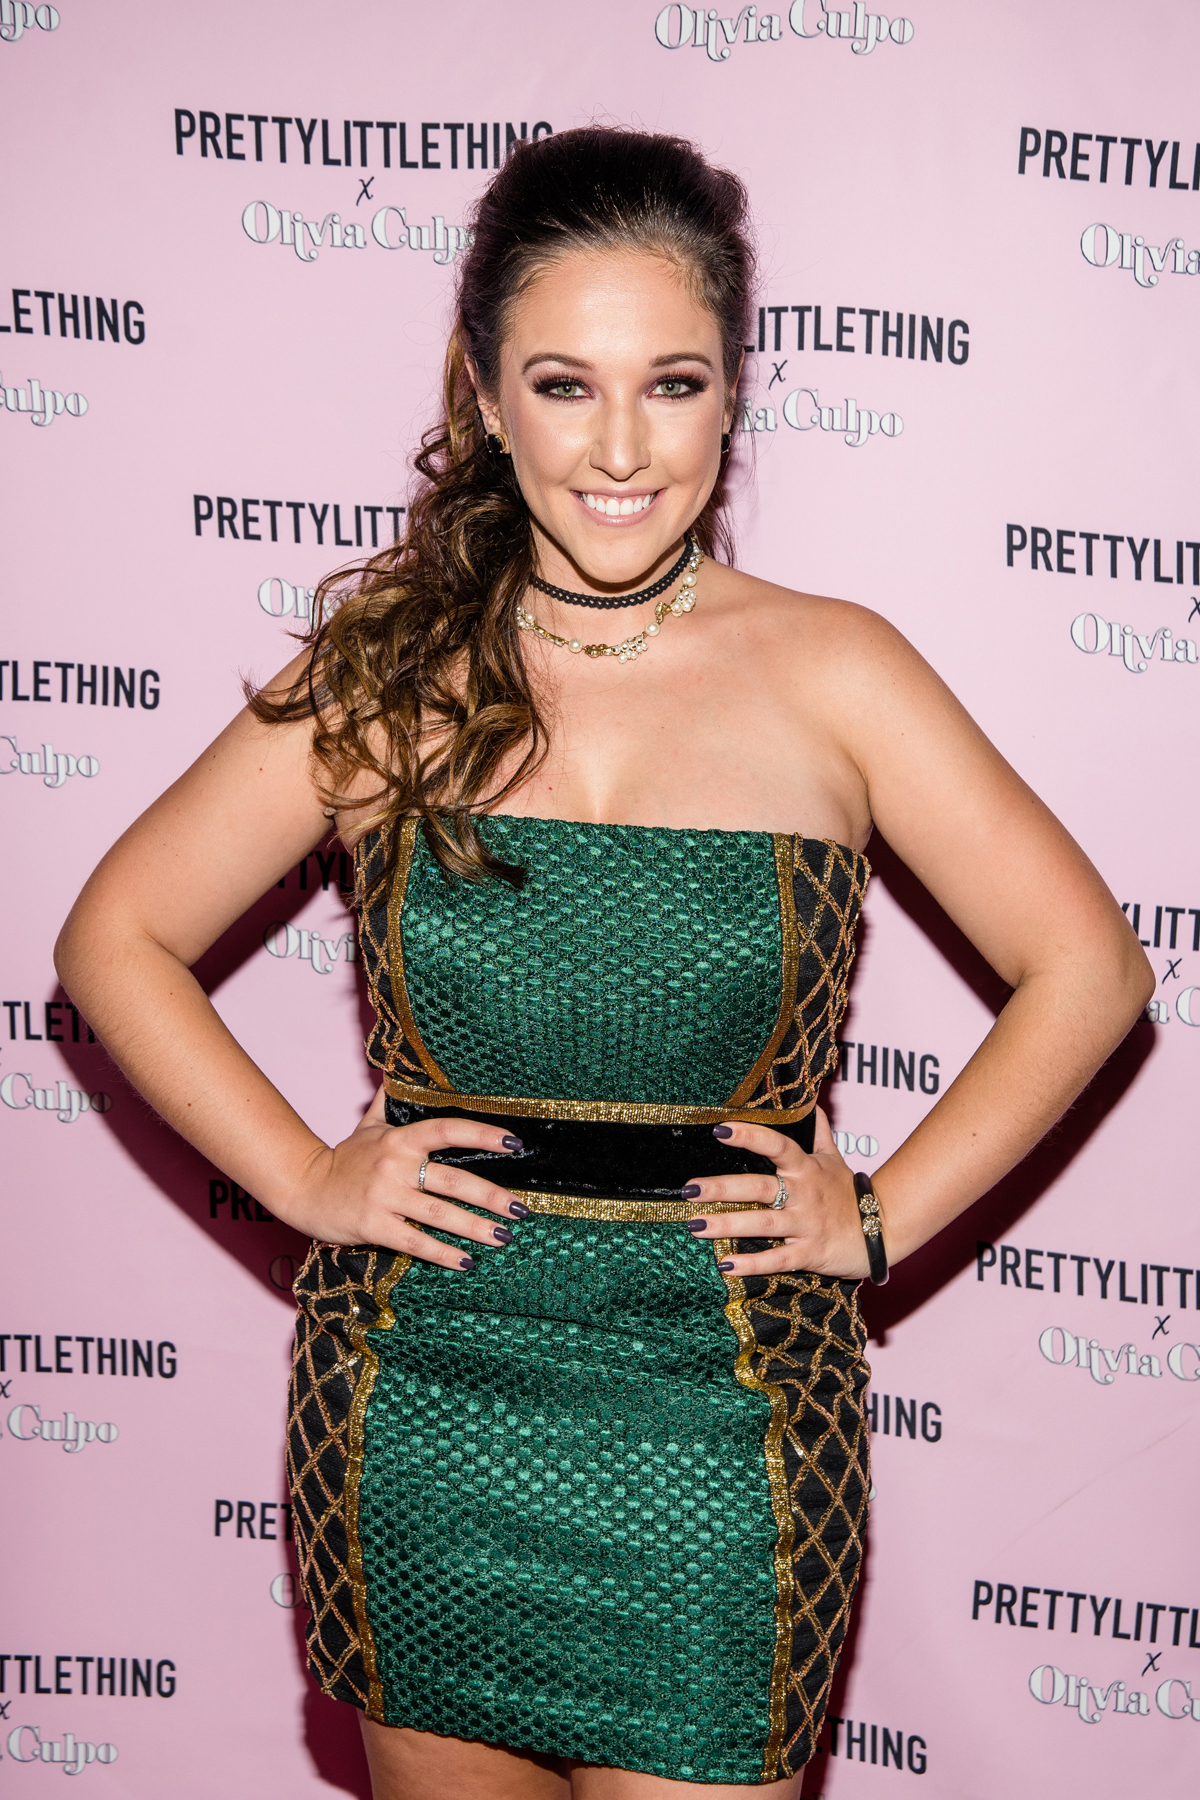 PrettyLittleThing PLT X Olivia Culpo Collection  Celebrity Launch Party Gianna Martello.jpg